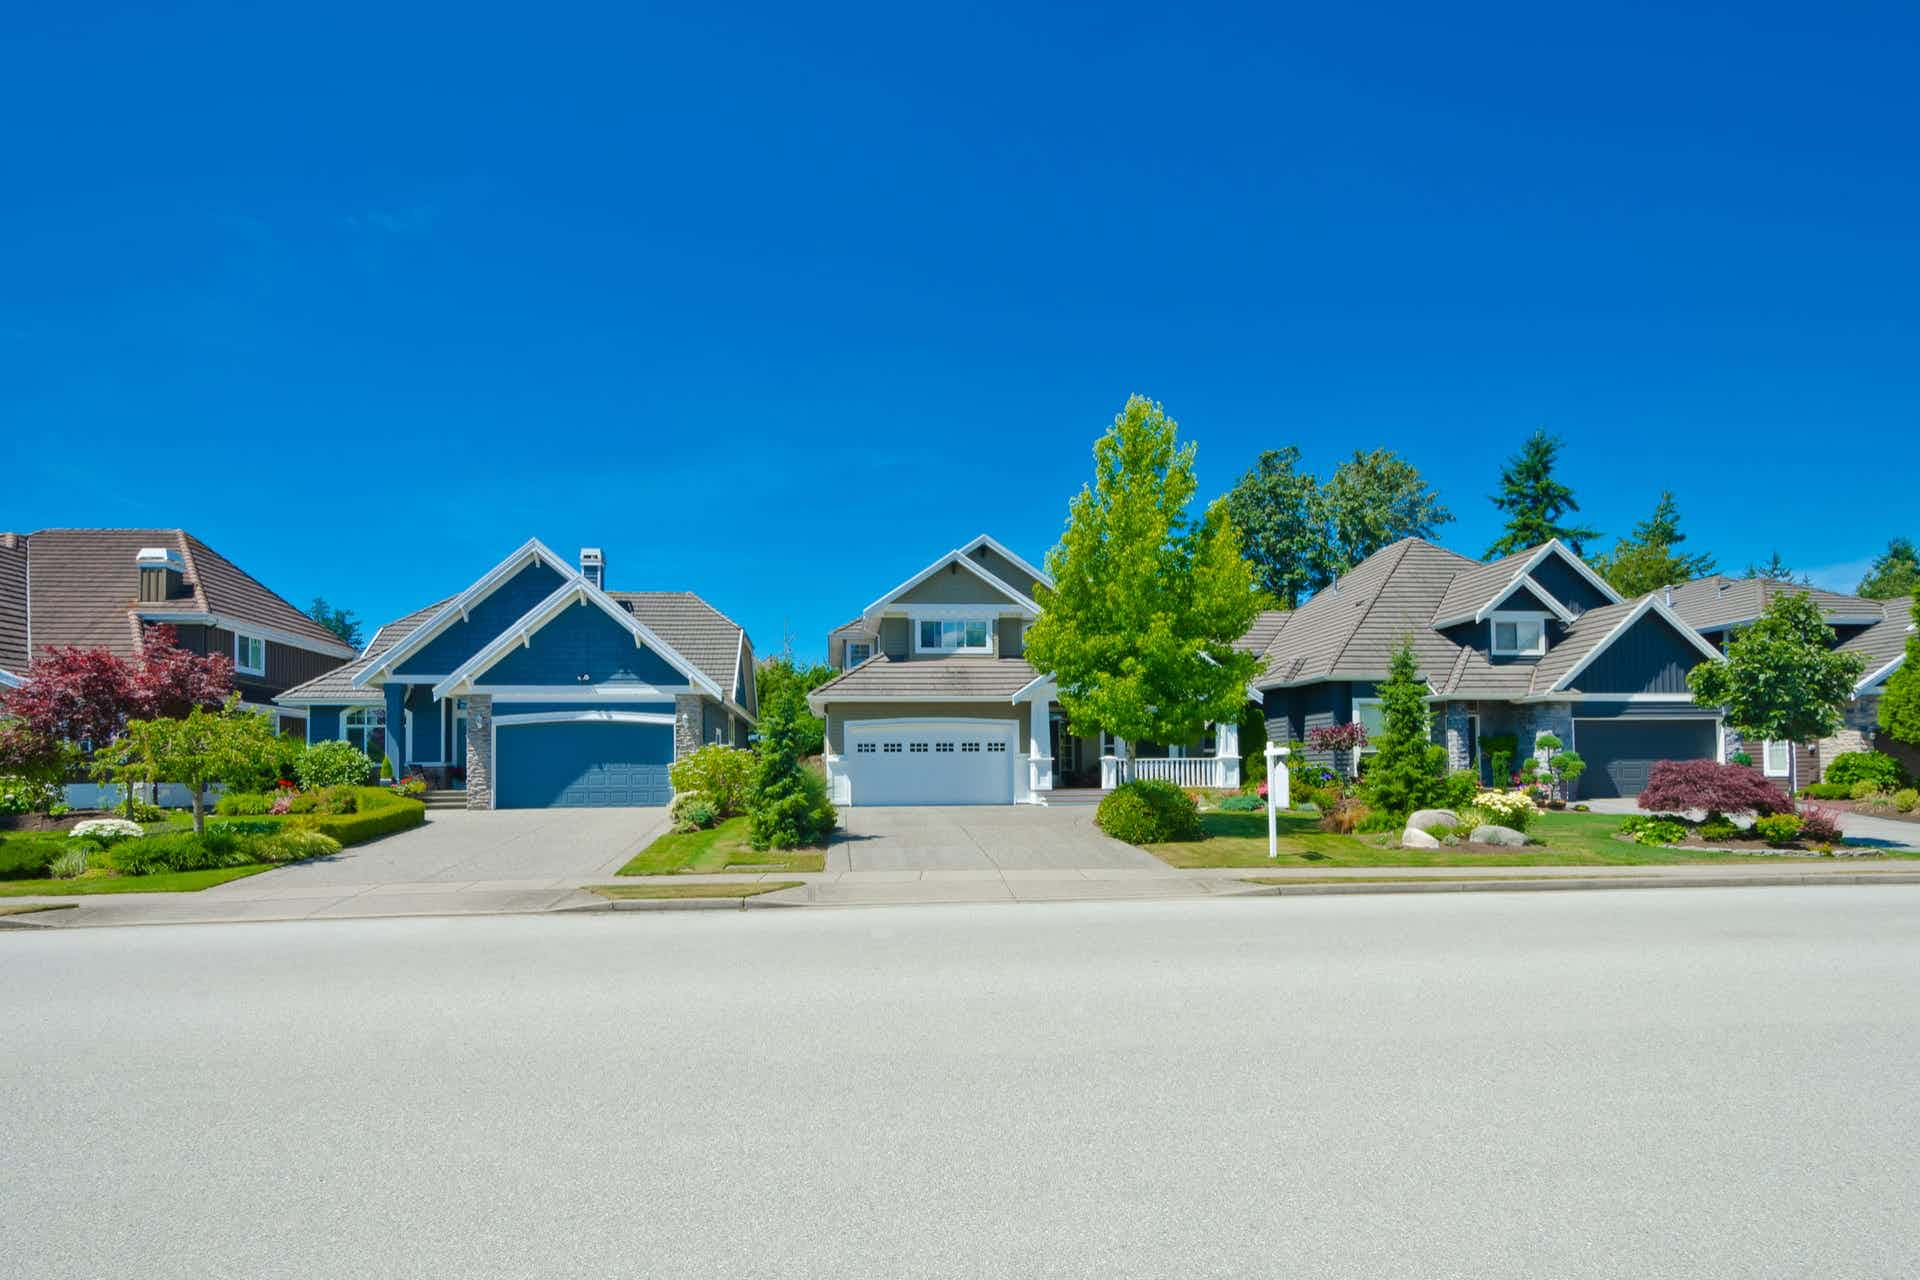 How Does Your Neighborhood Affect Your Home's Value?